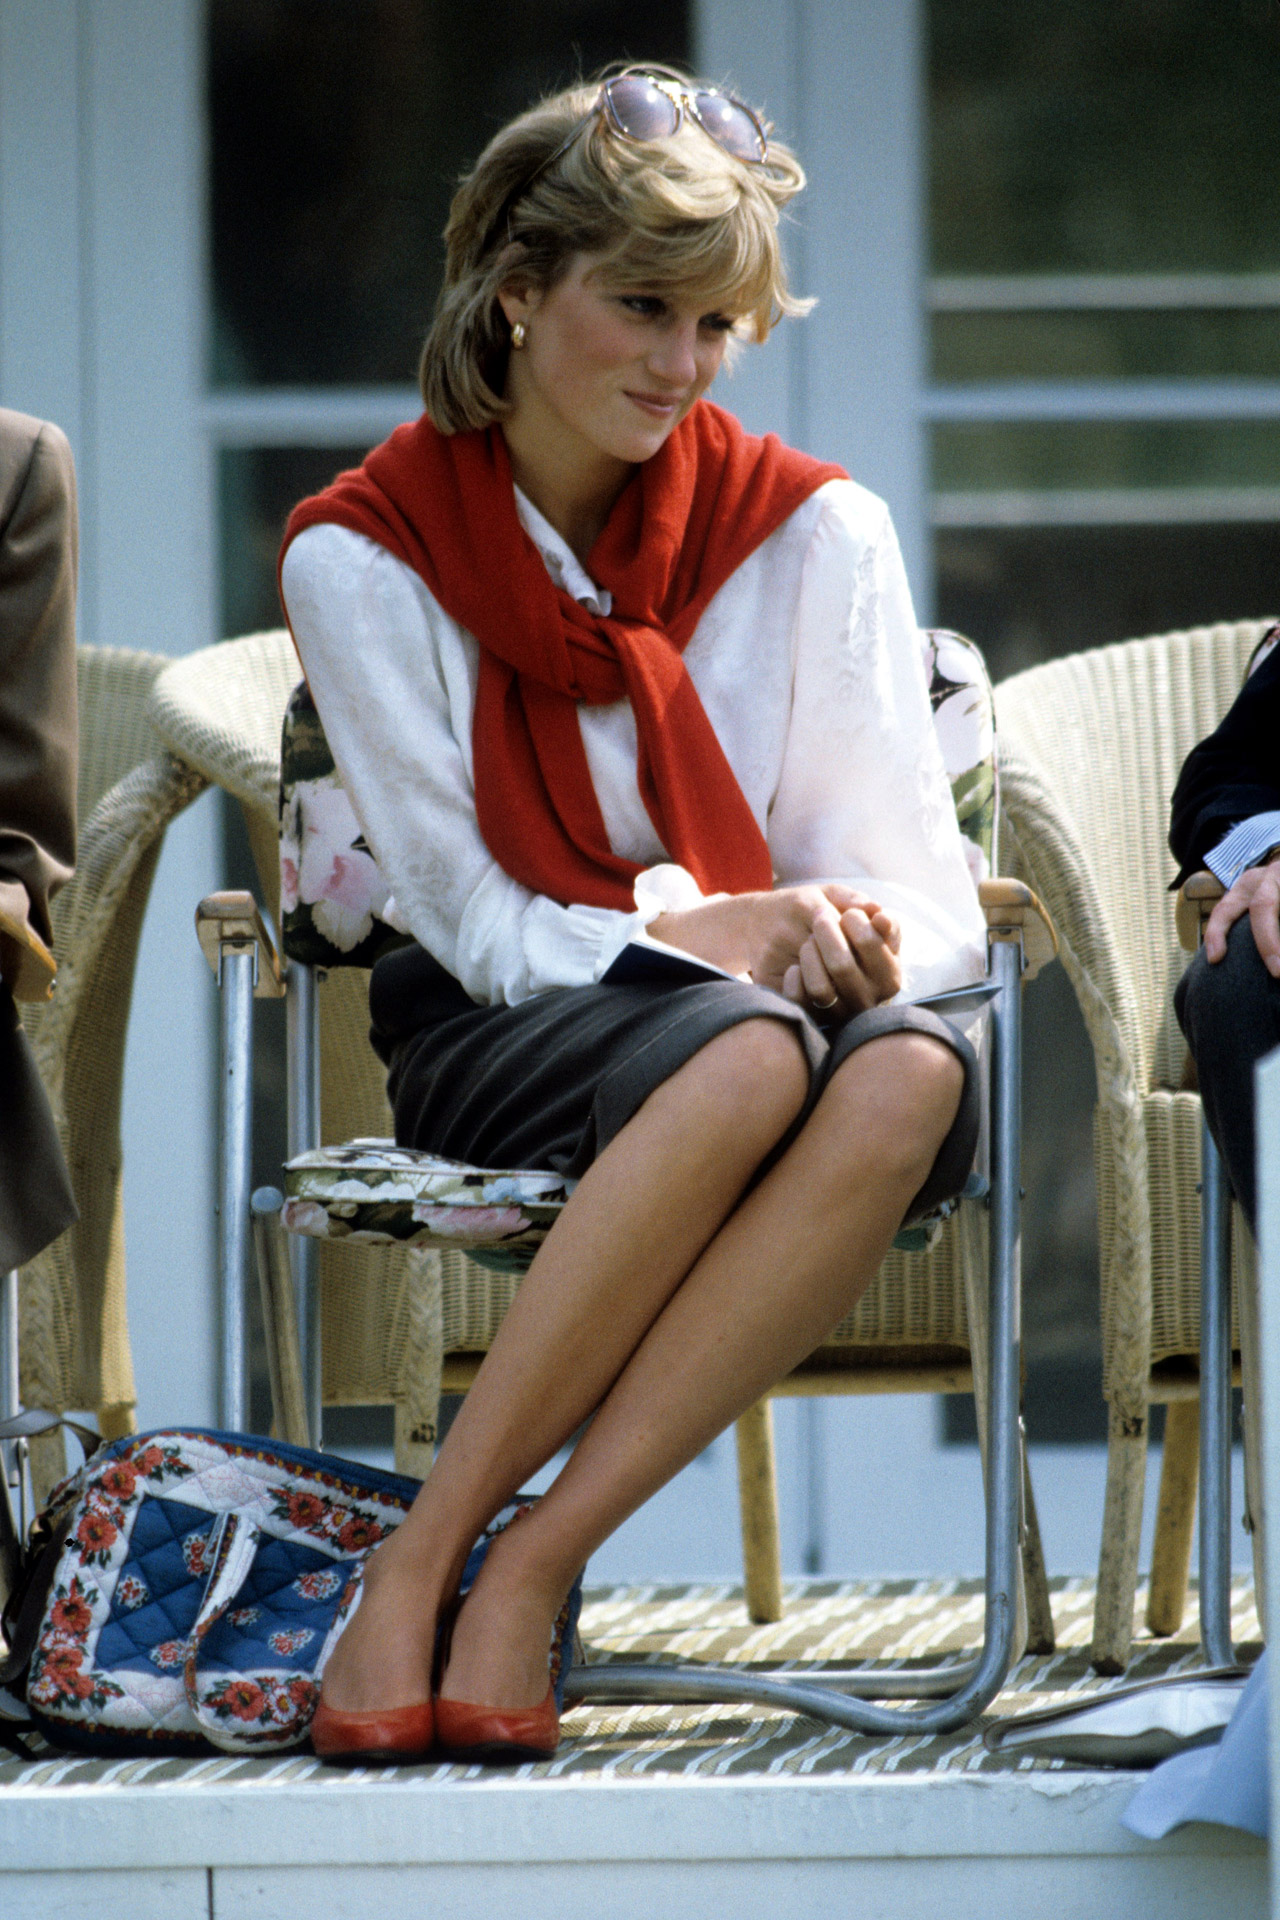 Prince Charles and Princess Diana Photo C GETTY IMAGES0172